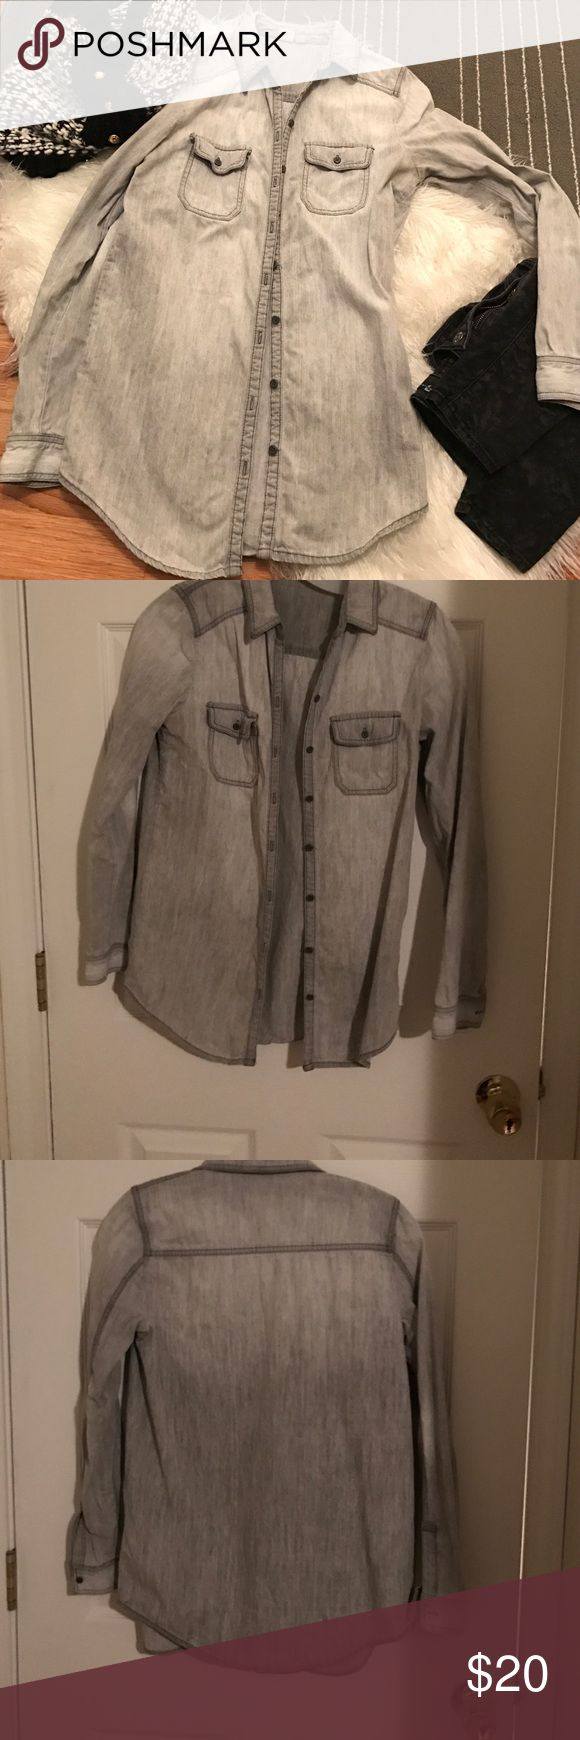 Grey distressed chambray shirt Preloved gray chambray shirt. 100% cotton. This is stiff chambray. BP brand from Nordstrom. Reasonable offers accepted. bp Tops Button Down Shirts